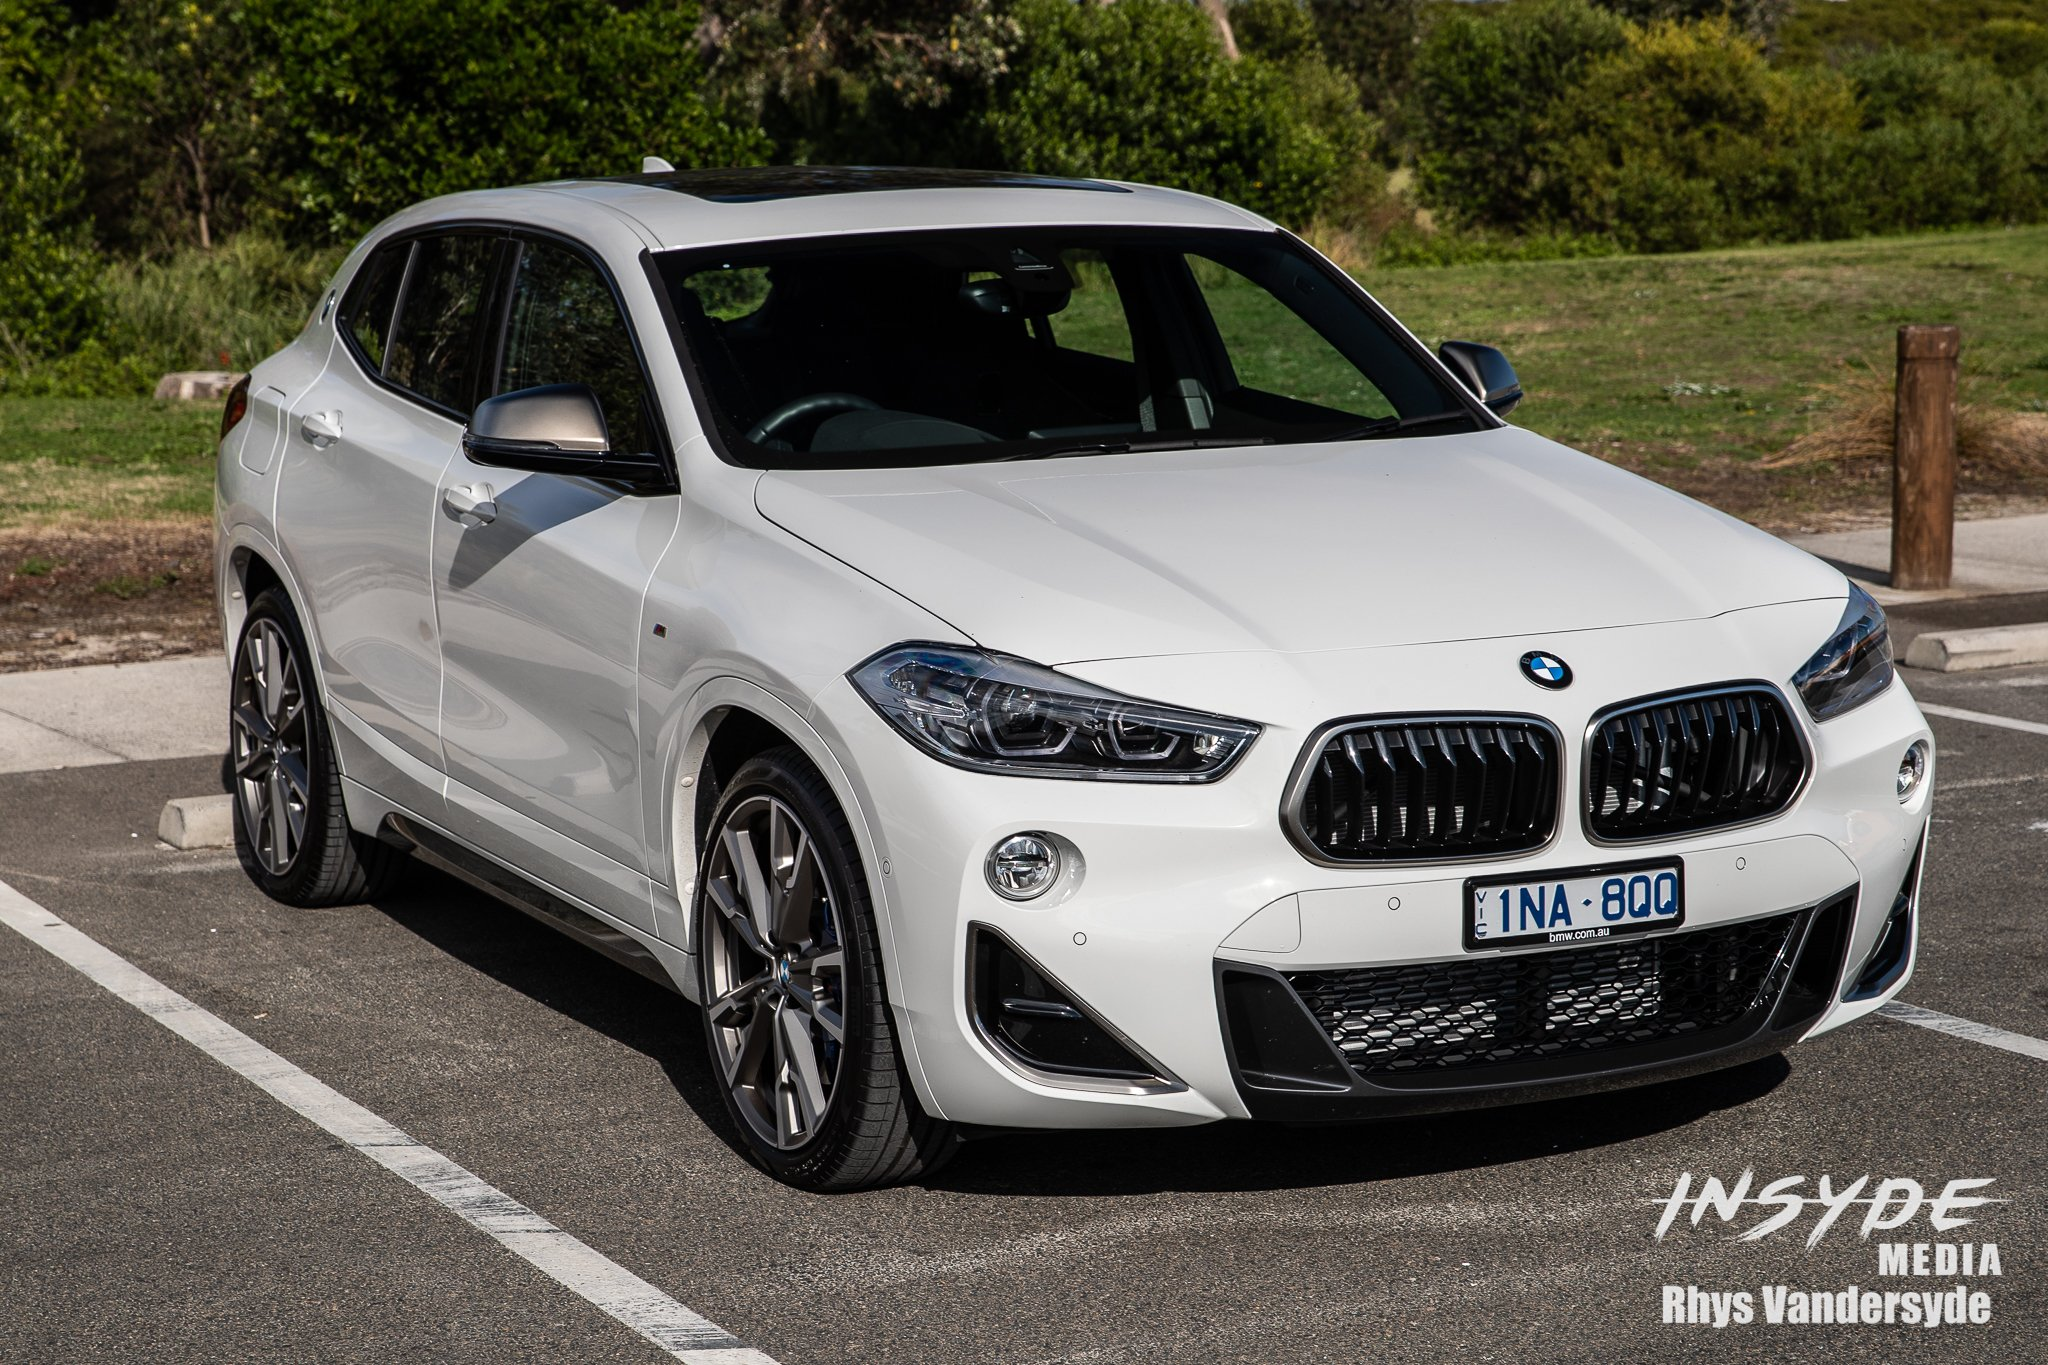 Photo Shoot: BMW X2 M35i